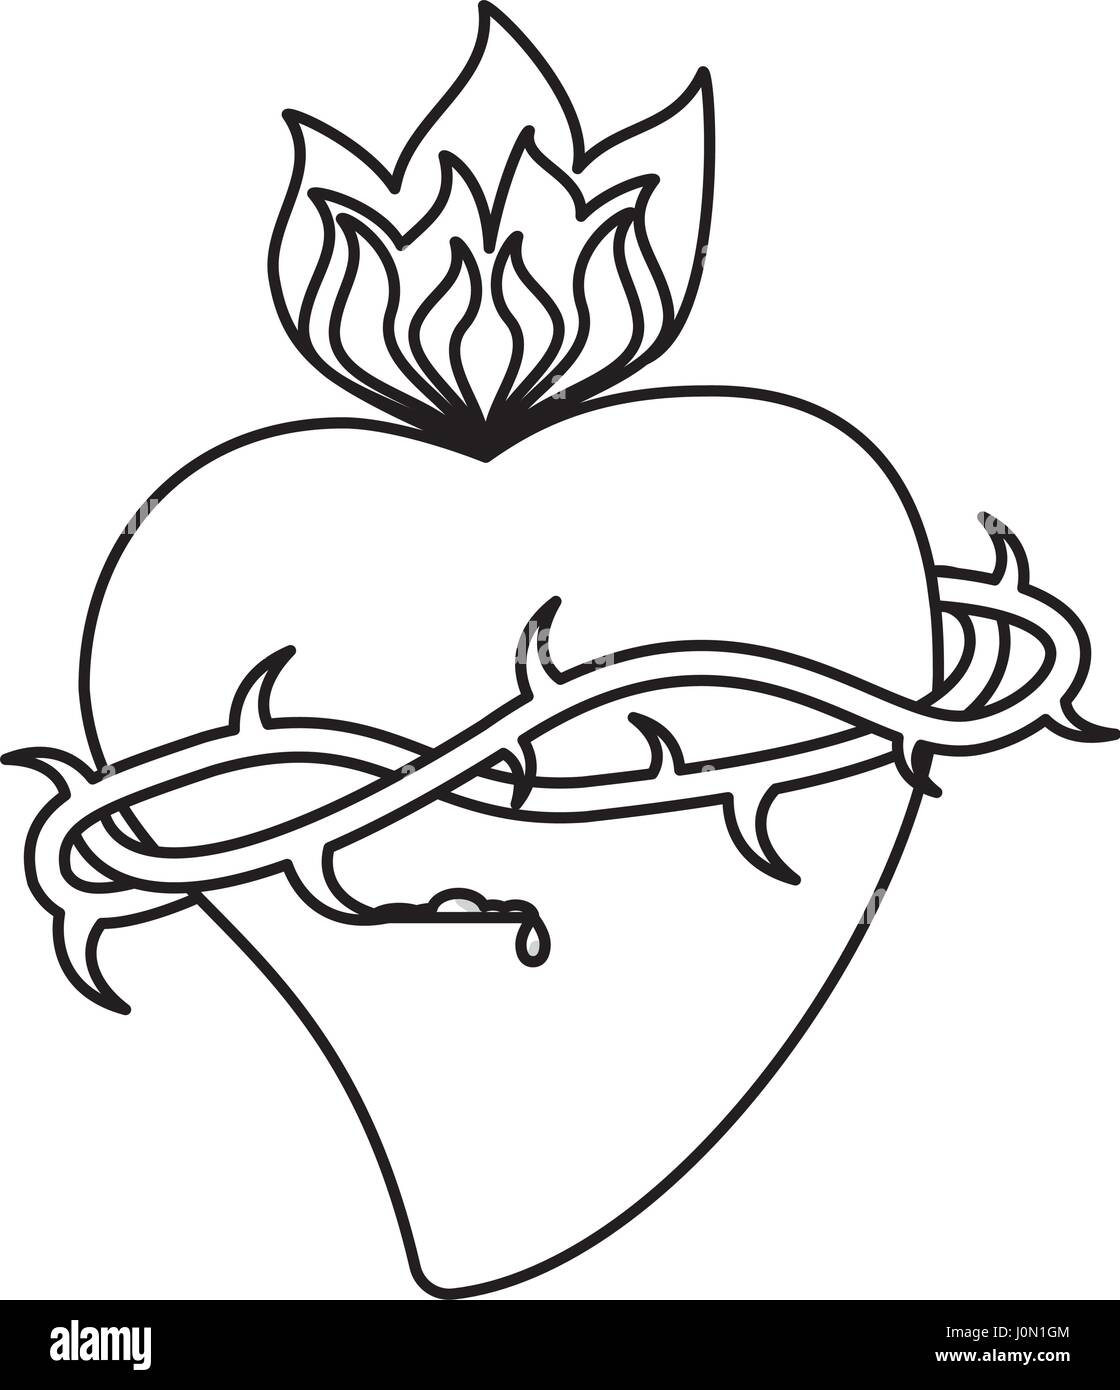 sacred heart crown flame outline - Stock Vector